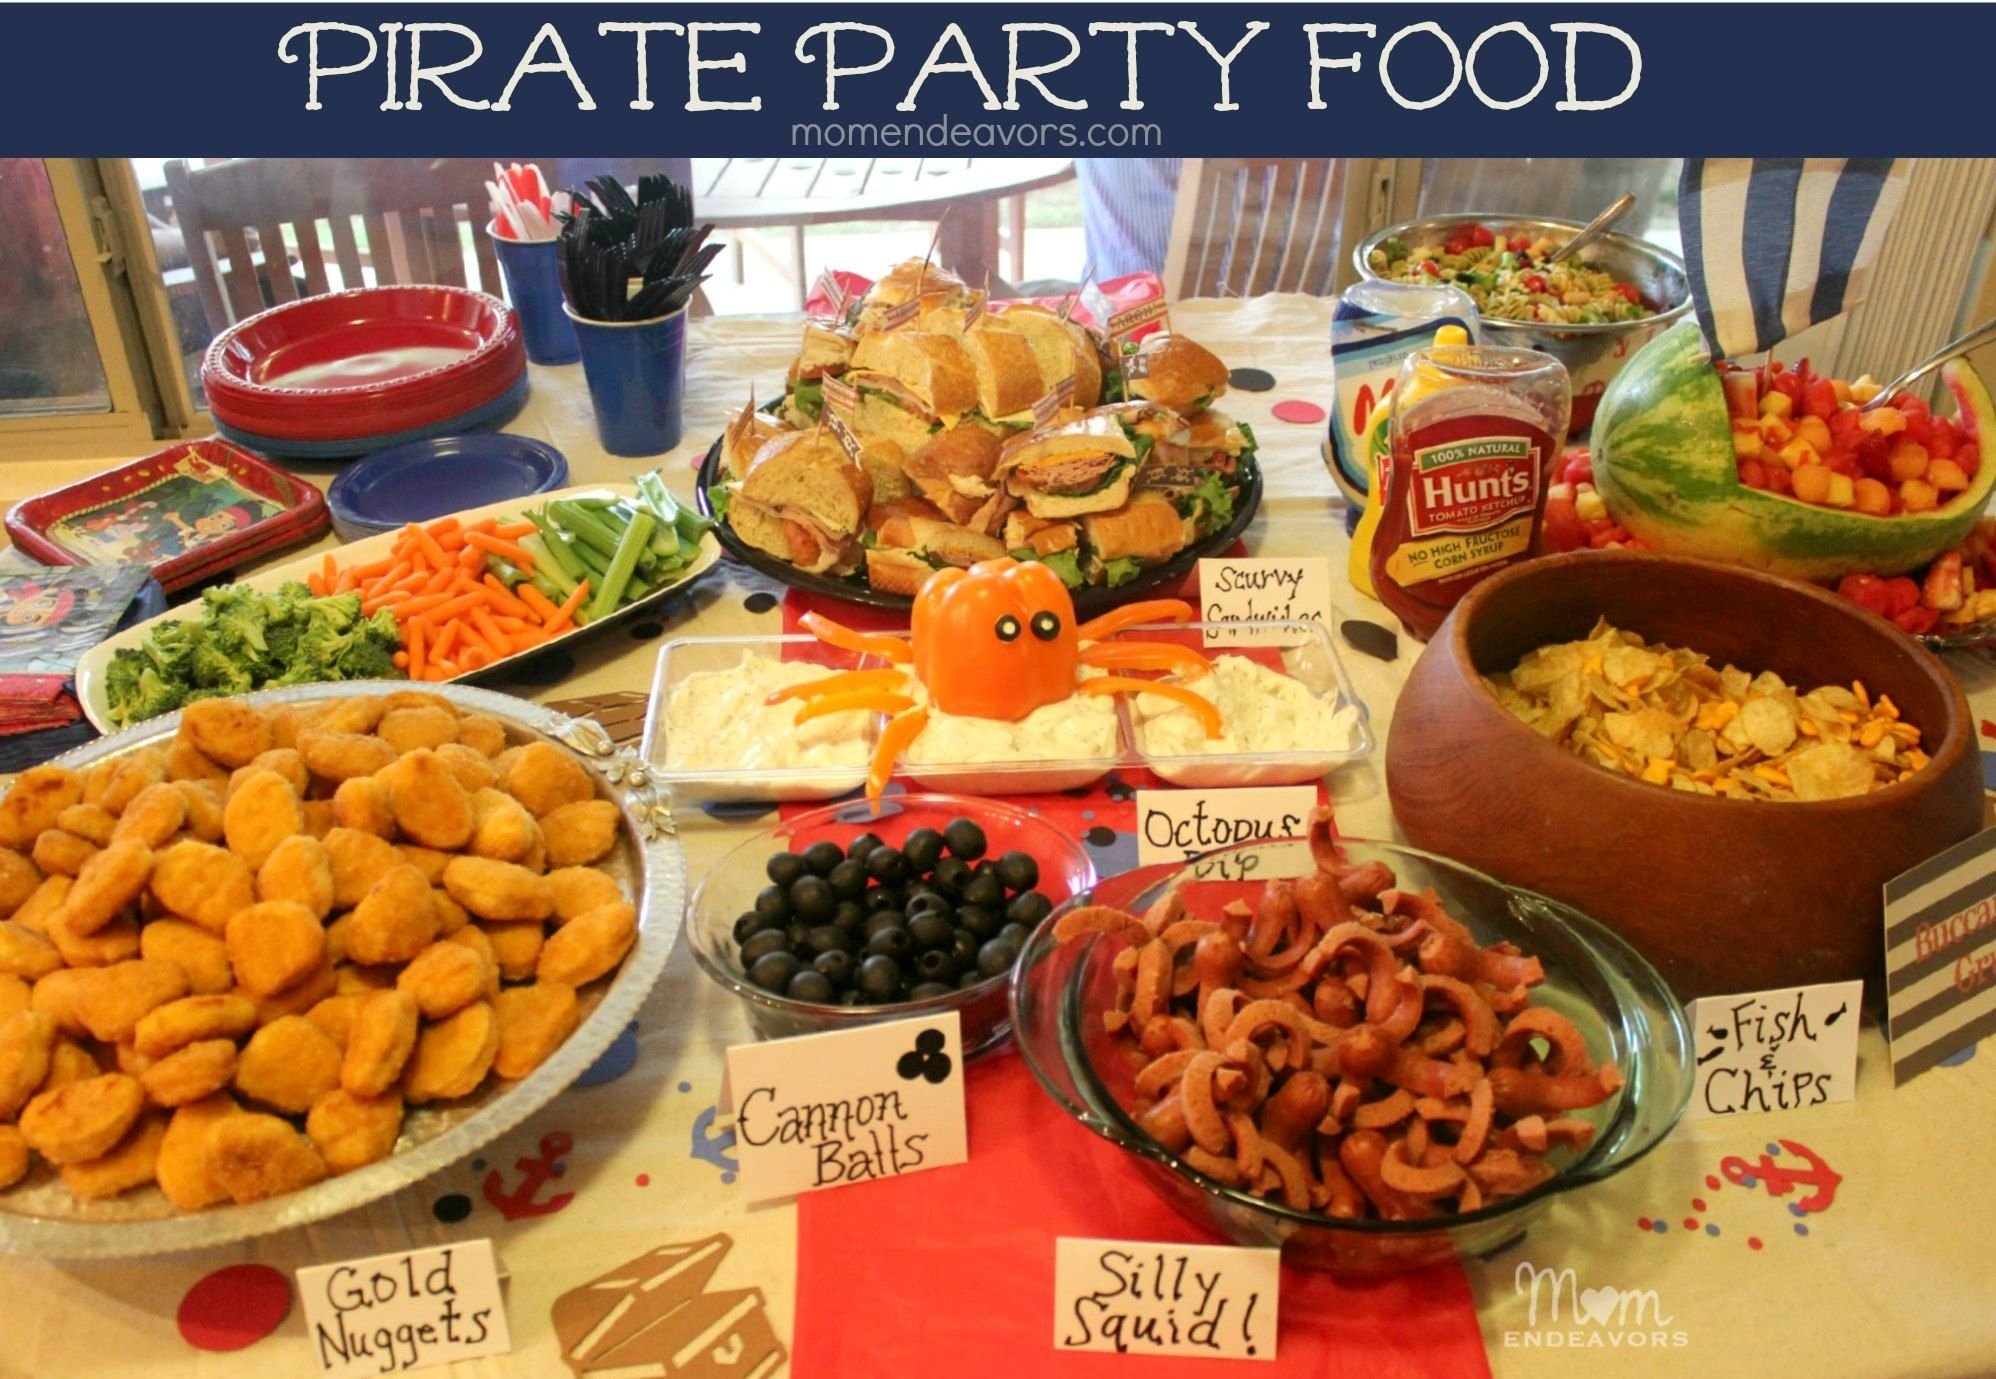 10 Pretty Jake And The Neverland Pirates Birthday Party Ideas jake and the never land pirates birthday party food pirate 2020